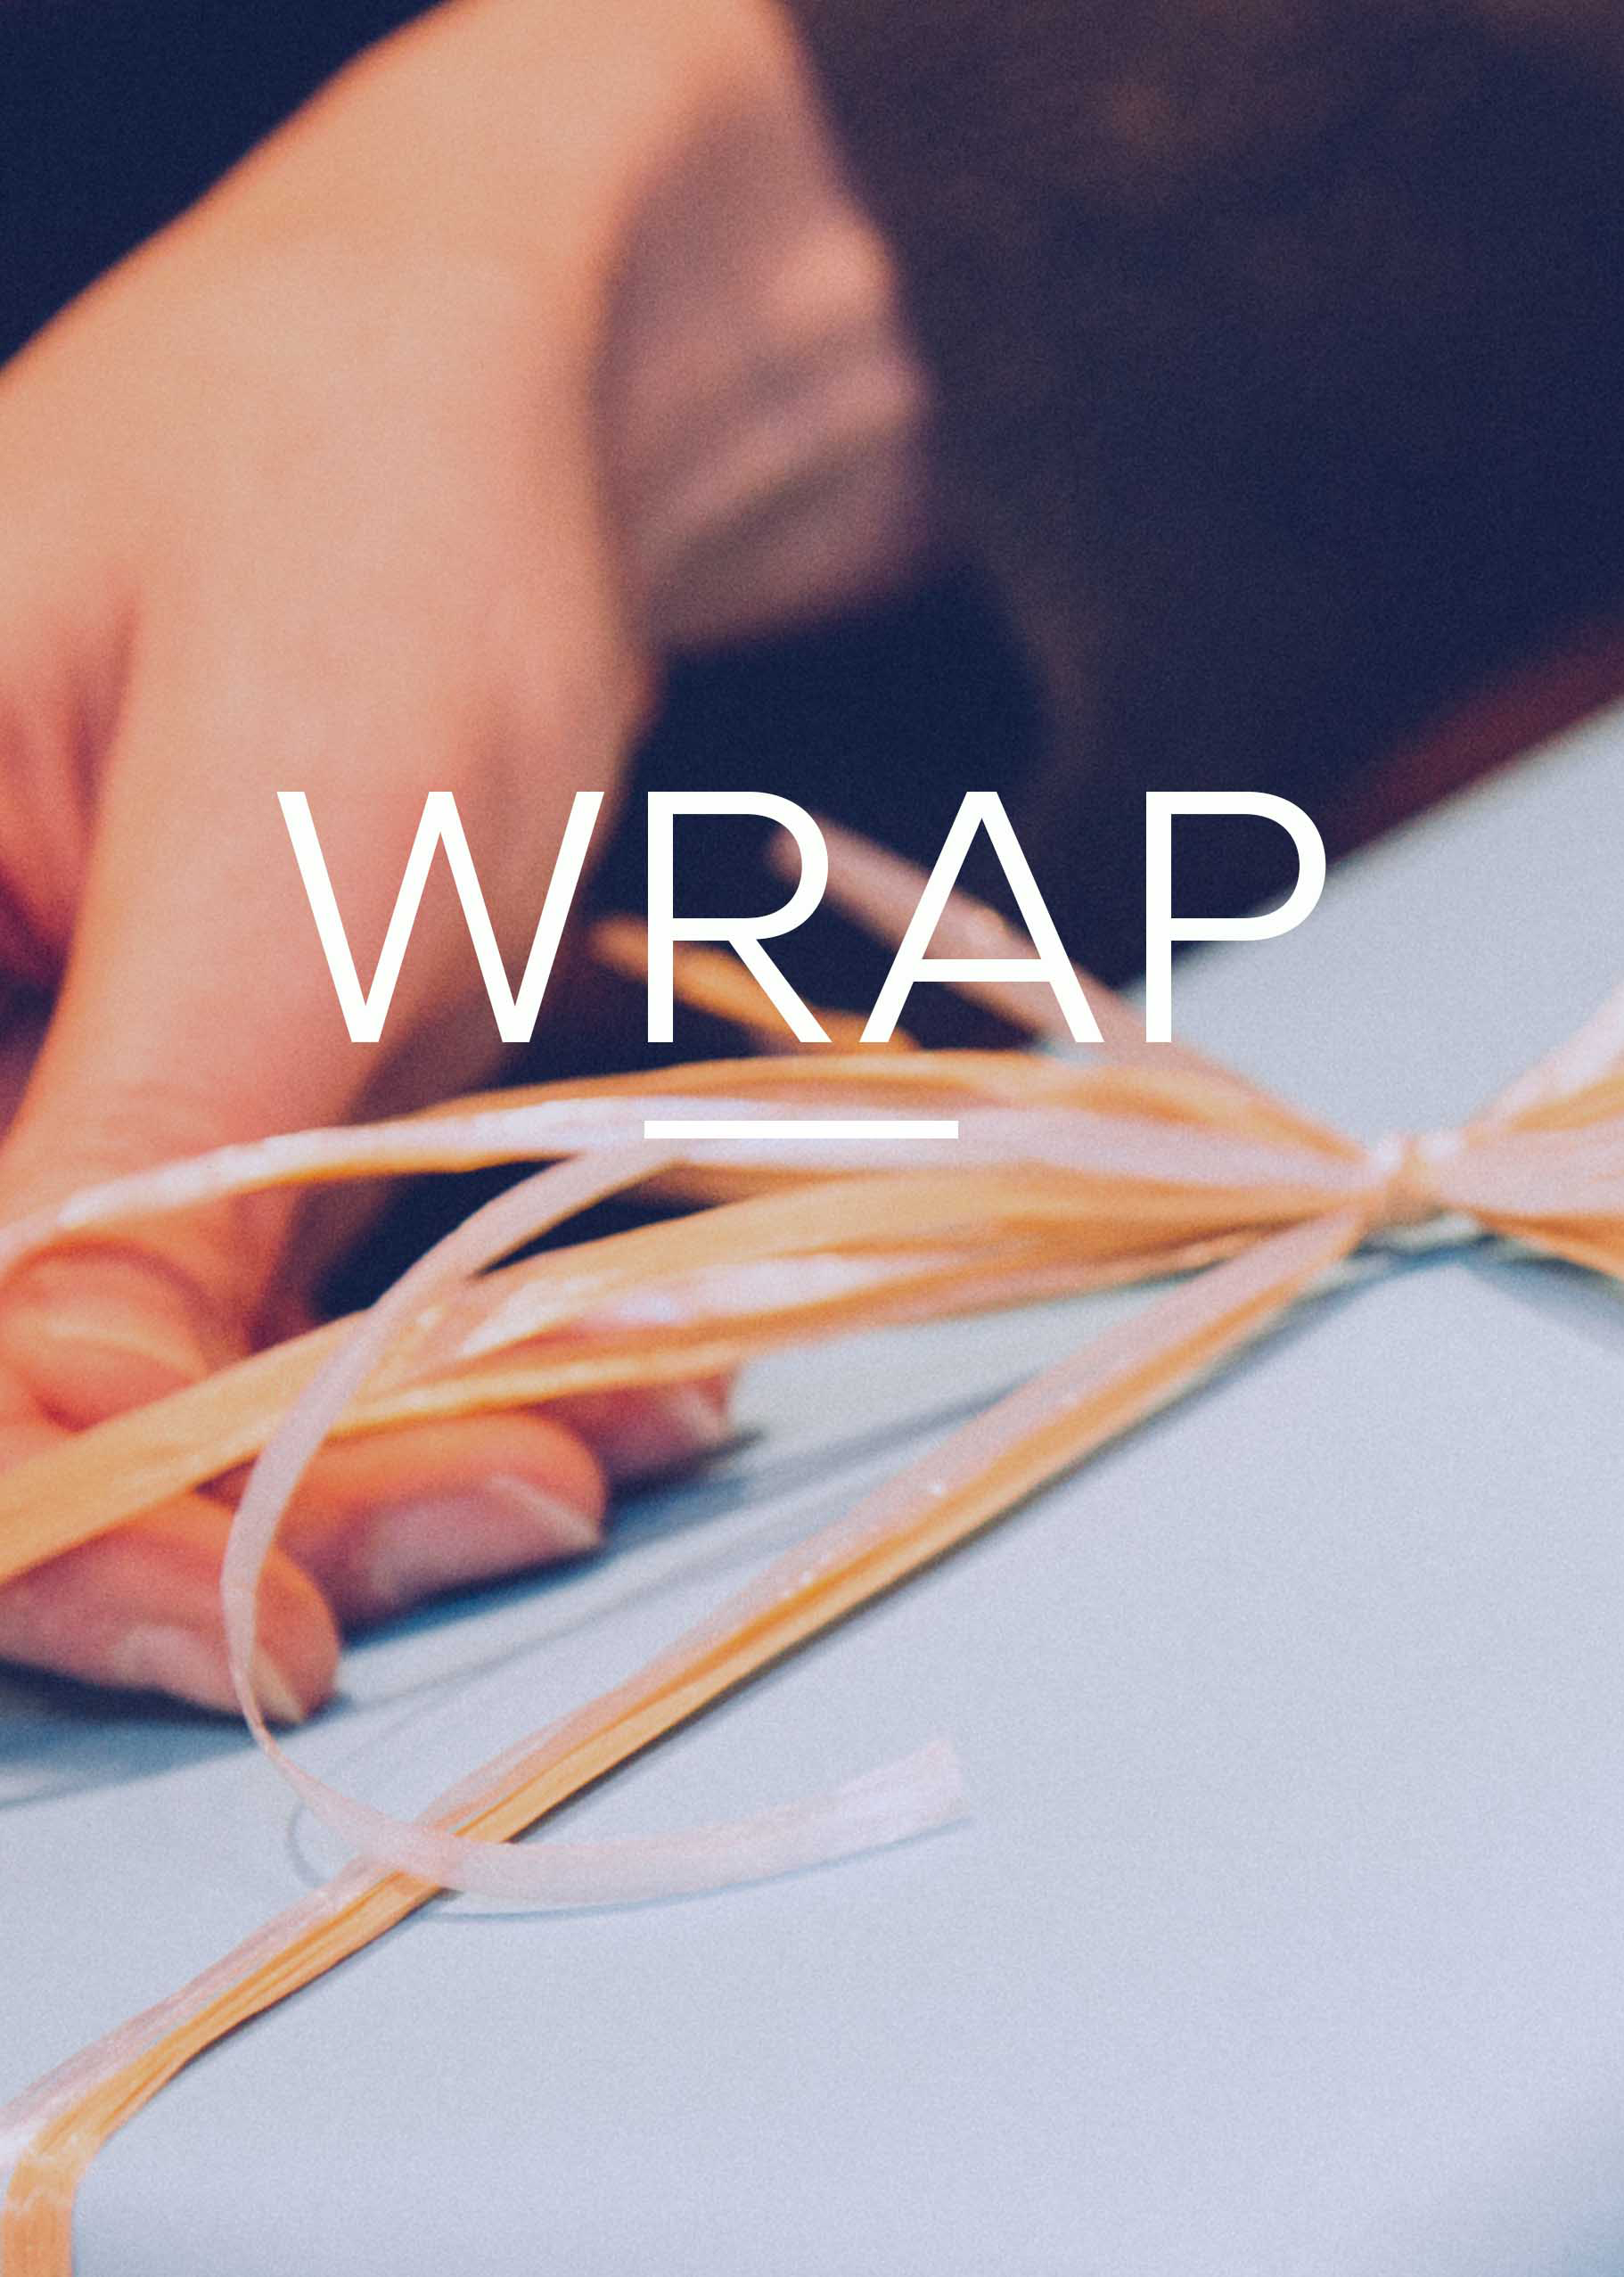 Let us gift wrap and expertly package your items using eco- friendly recycled packaging materials.